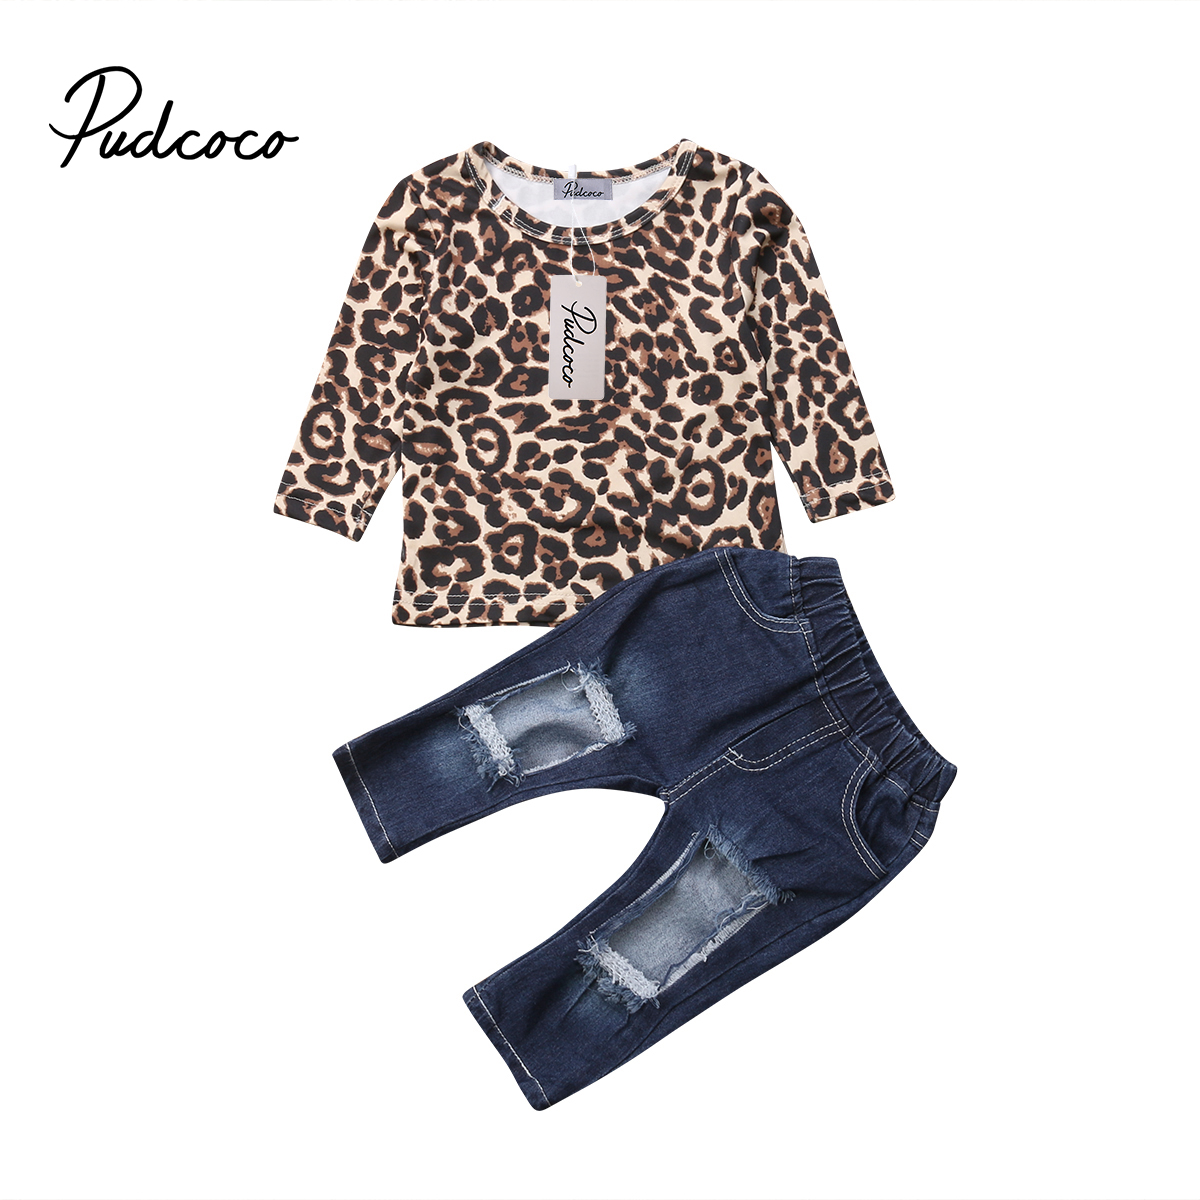 2pcs Kids Baby Girl Outfits Leopard Tops+Destroyed Jeans Pants Clothes